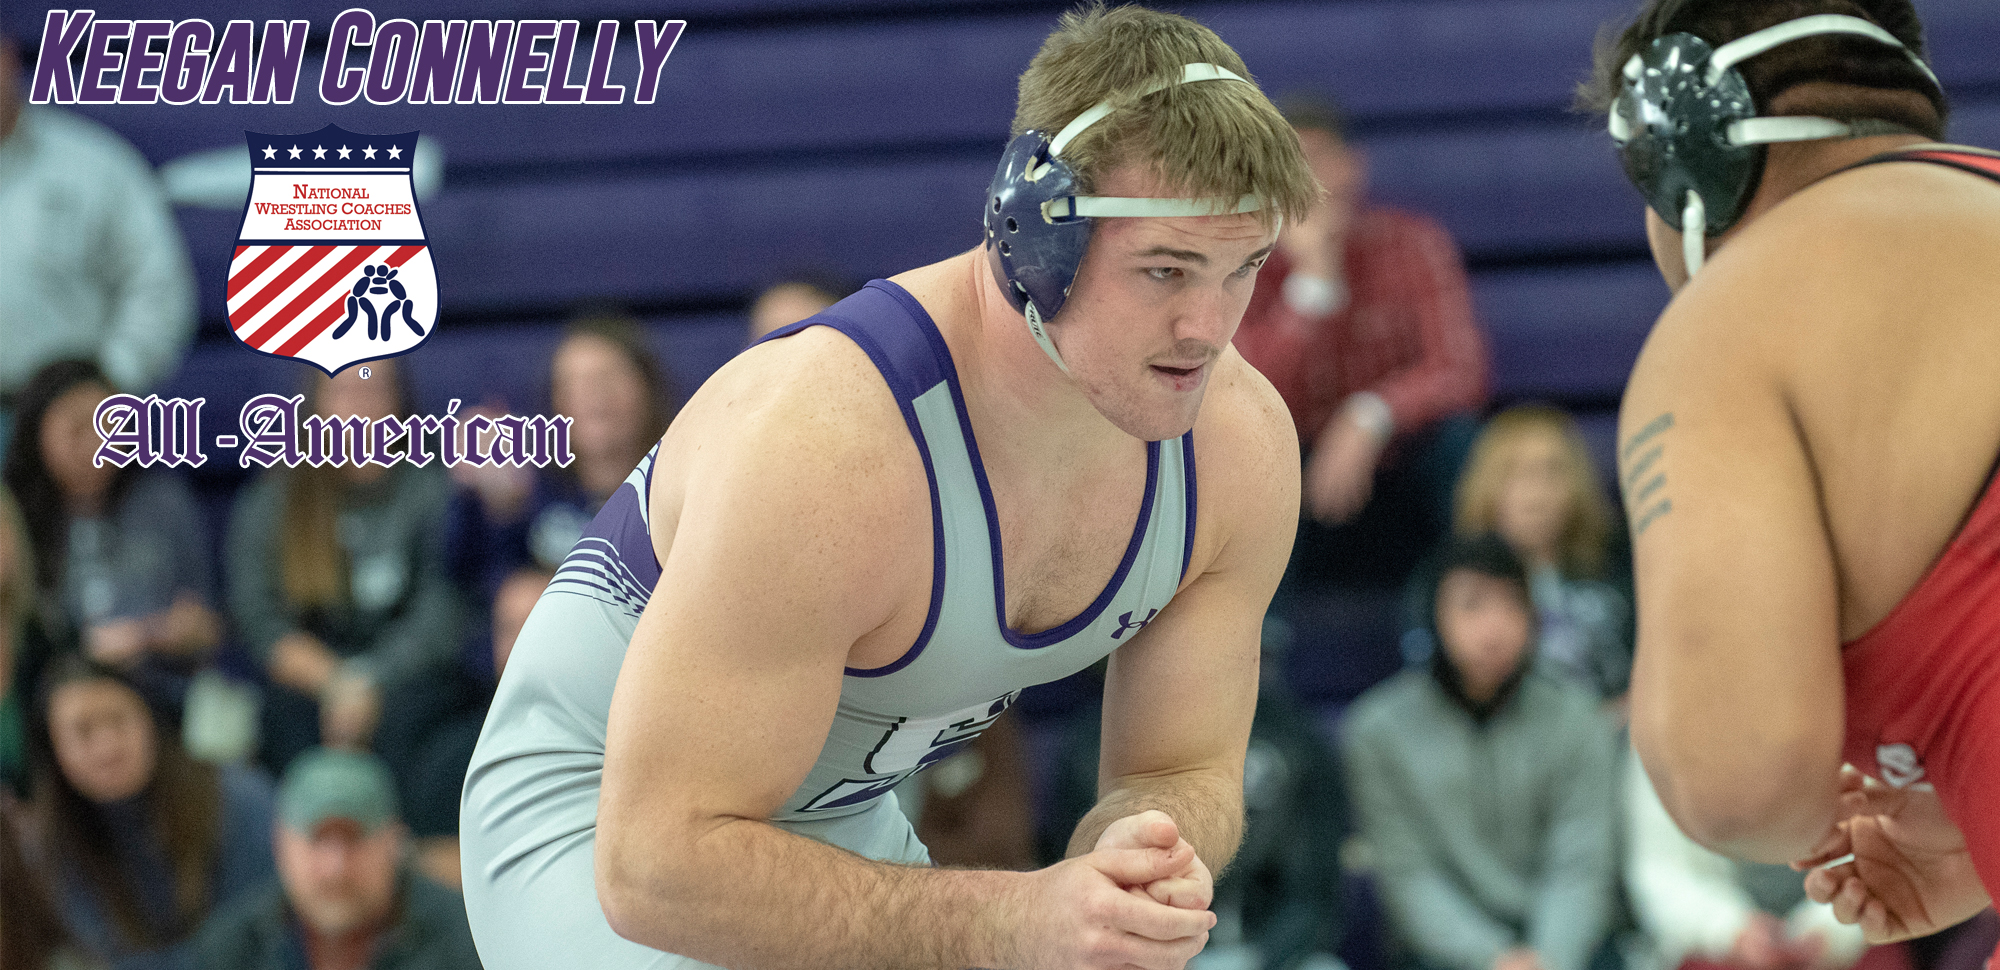 Senior Keegan Connelly was named to the 2019-20 NWCA Third Team All-American Team earlier this month.